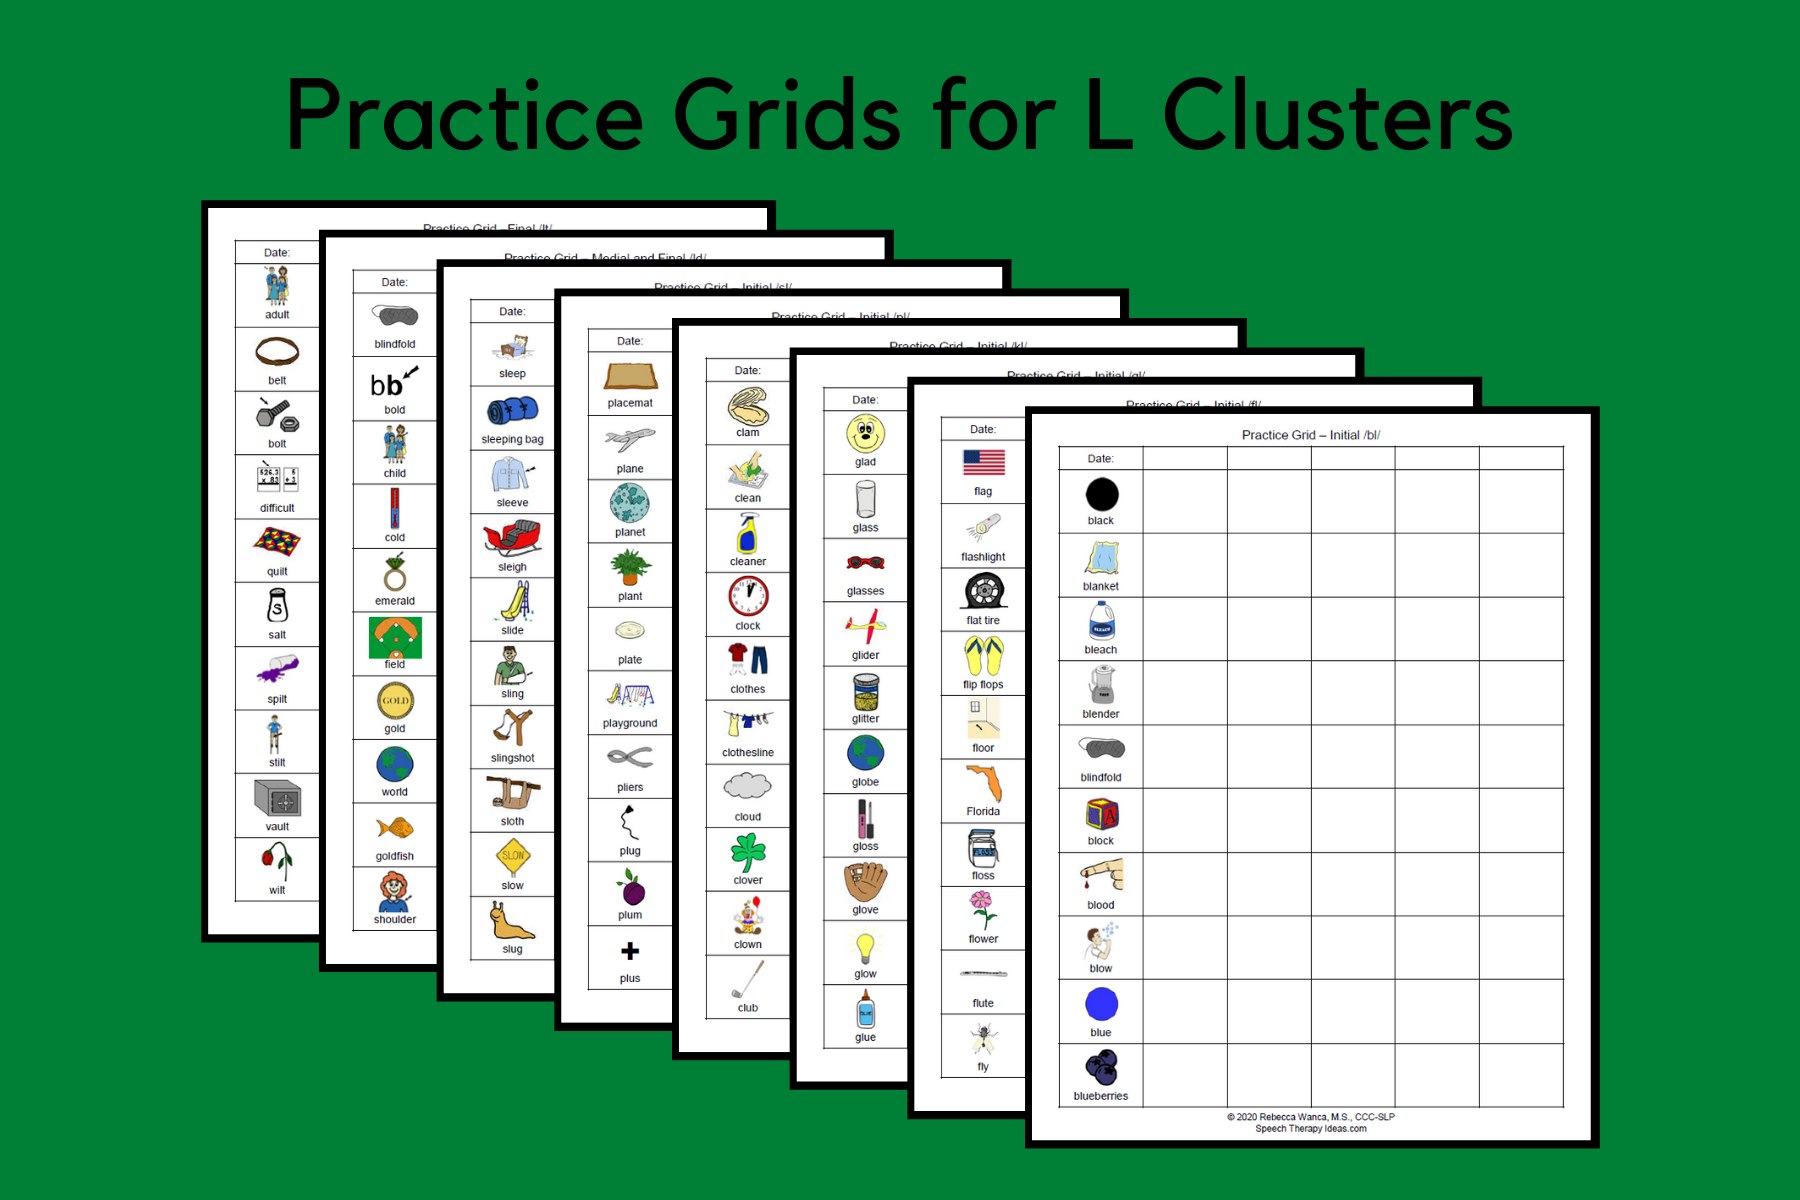 Practice Grids for L Clusters